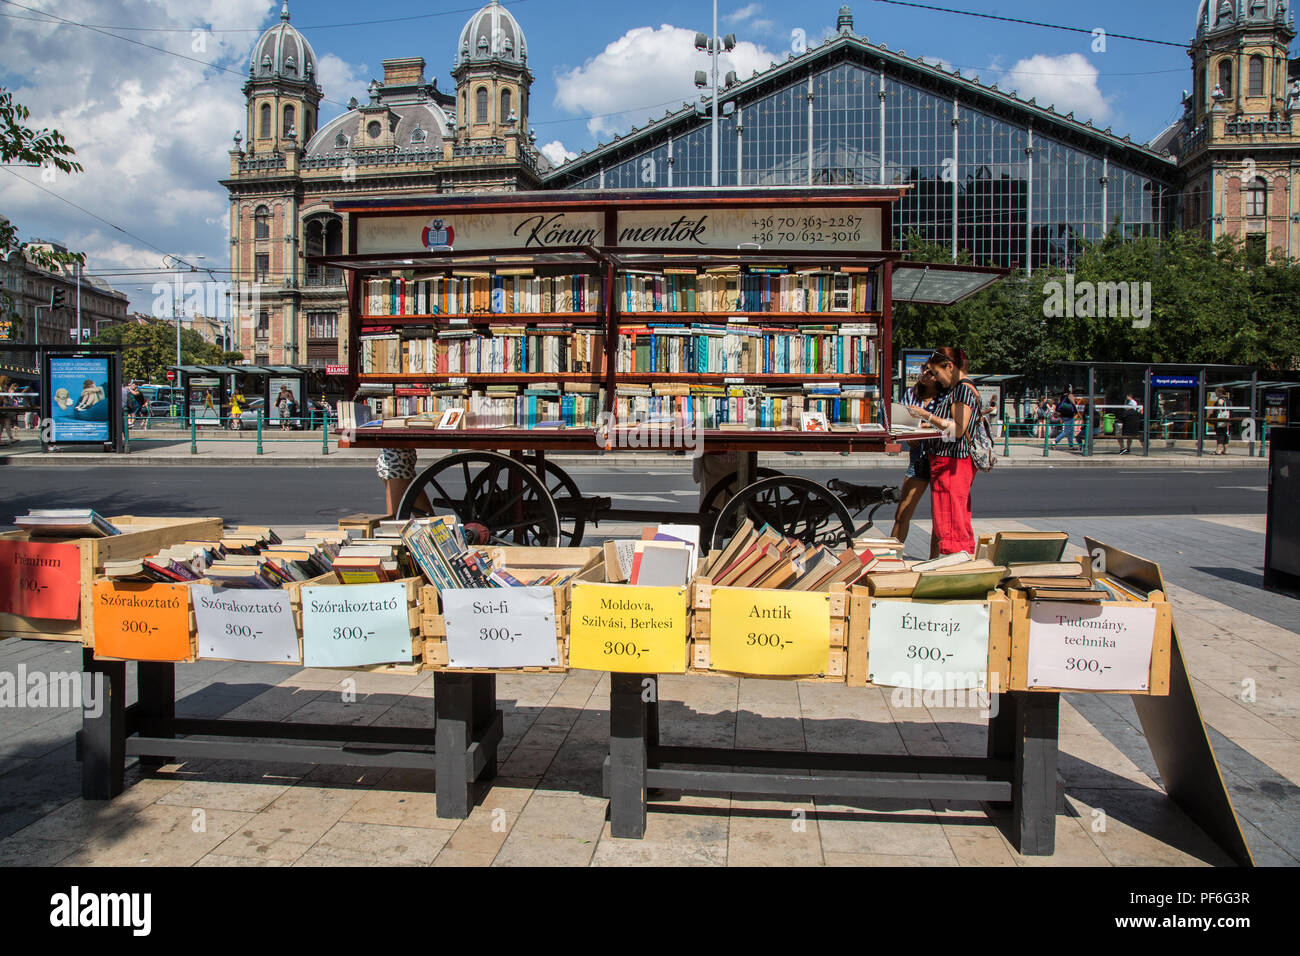 Budapest, Hungary. 14th August, 2018. A bookstall in front of Nyugati railway station. - Stock Image